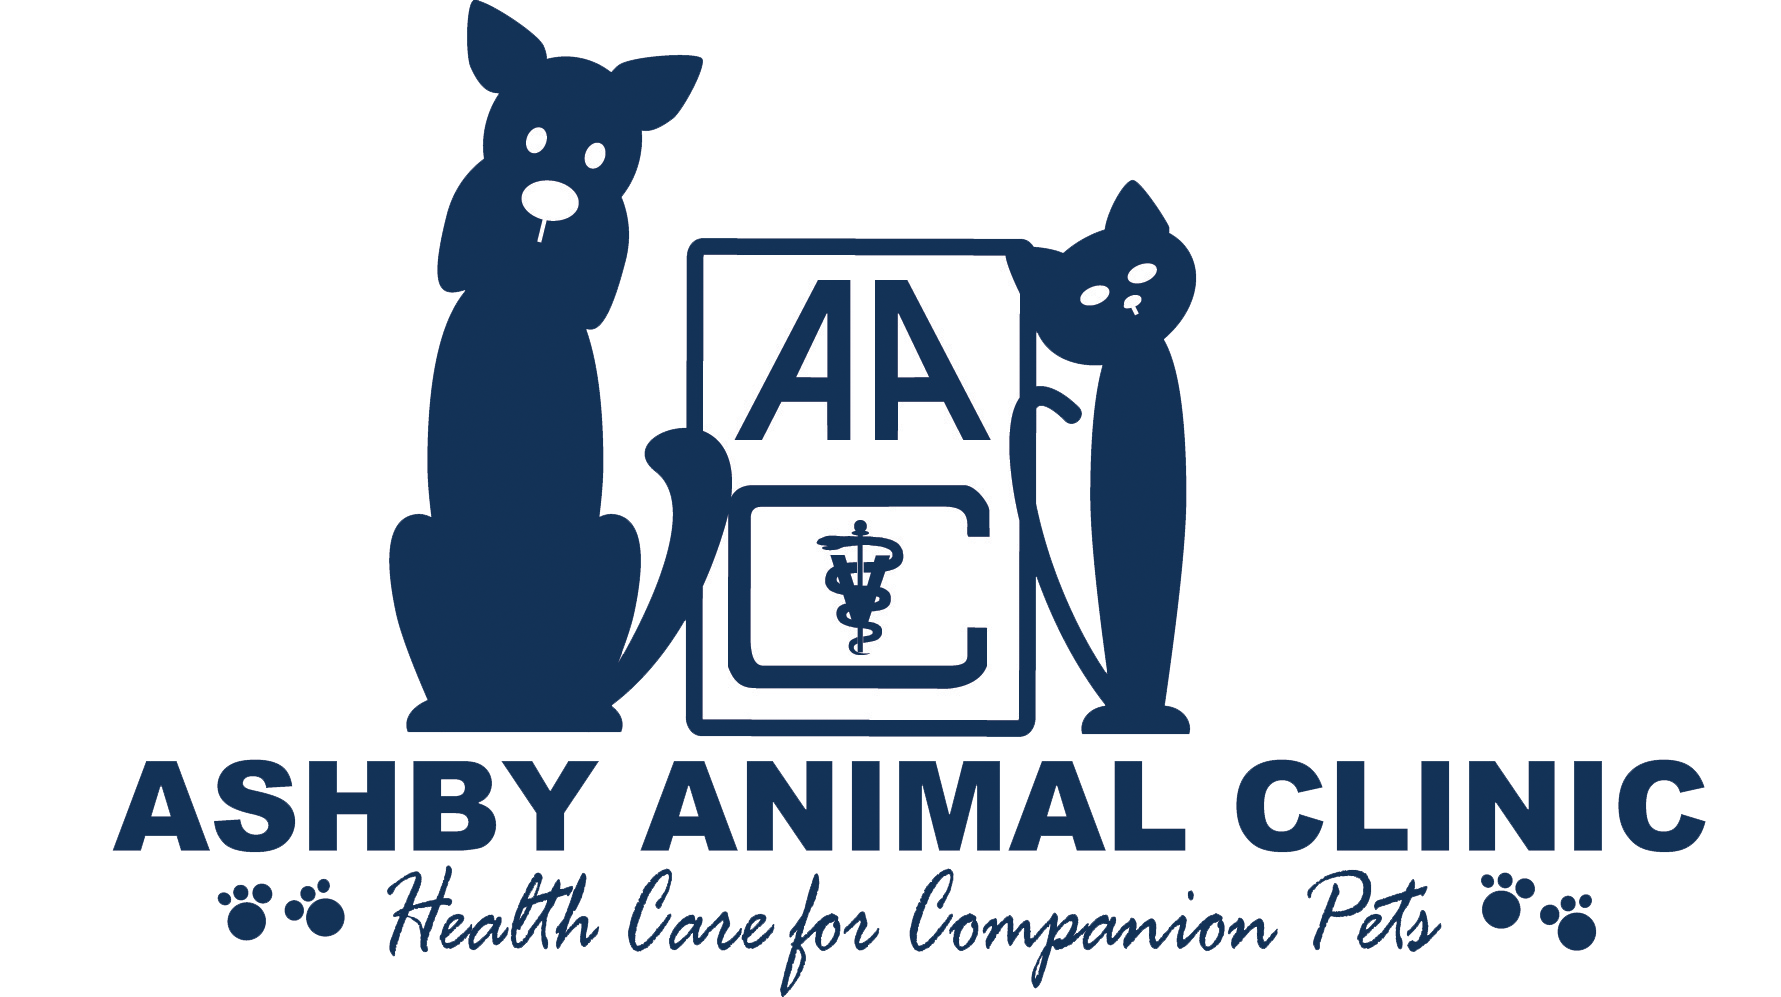 the aashby animal clinic logo in navy blue with a large outline cat to the left and a small outlined cat to the right